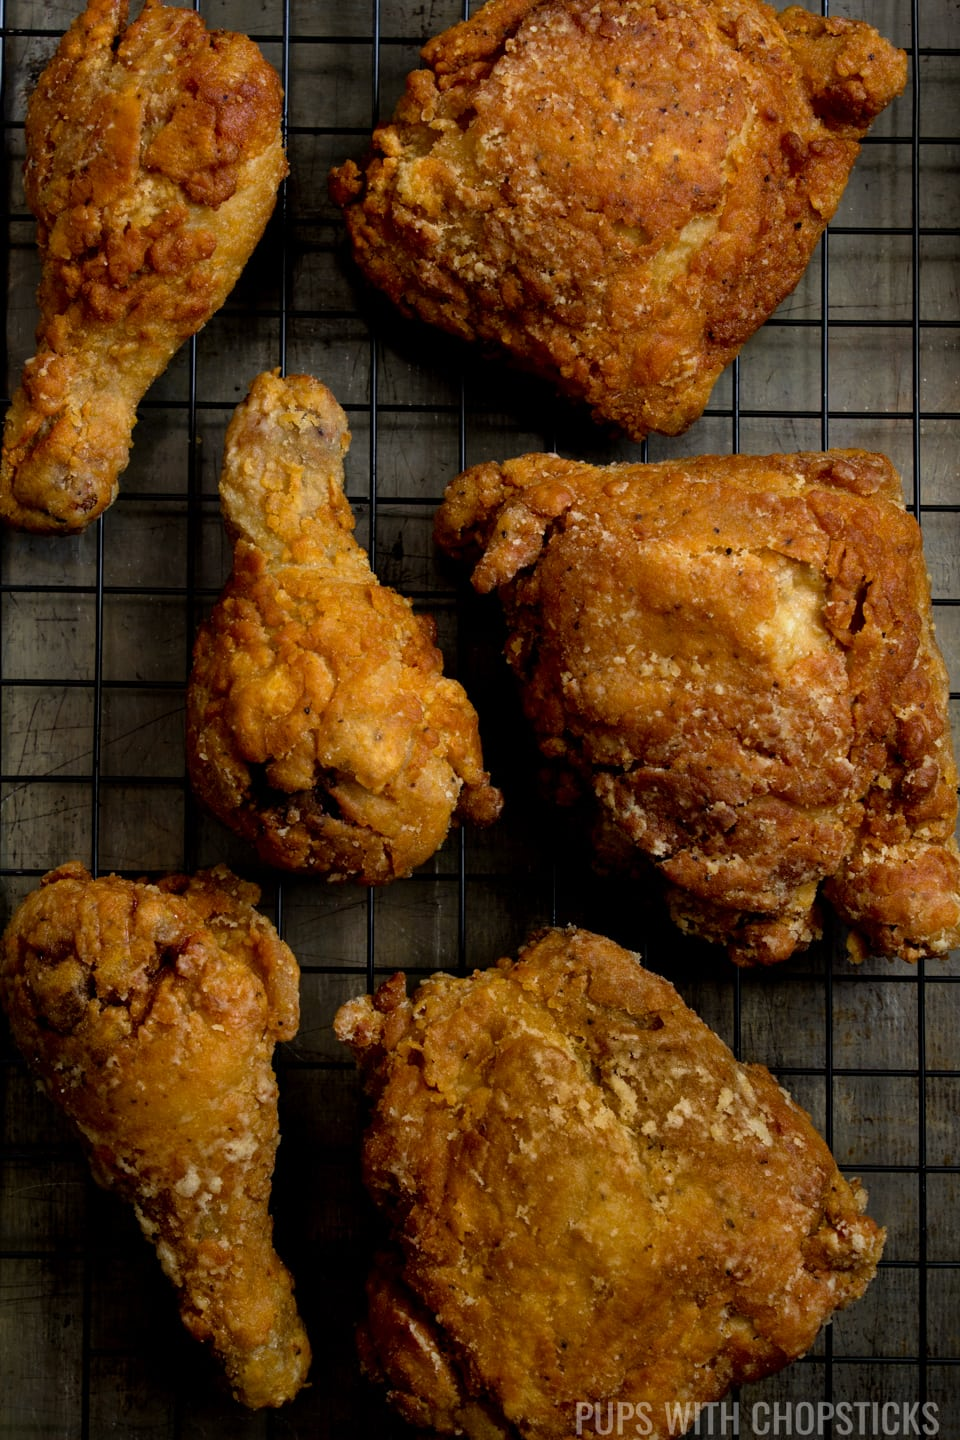 The Ultimate Super Crispy Fried Chicken Recipe that is super duper crispy, juicy and the batter never falls off the chicken so each bite is crispy to the end! #chicken #friedchicken #recipe #crispy #juicy #dinner